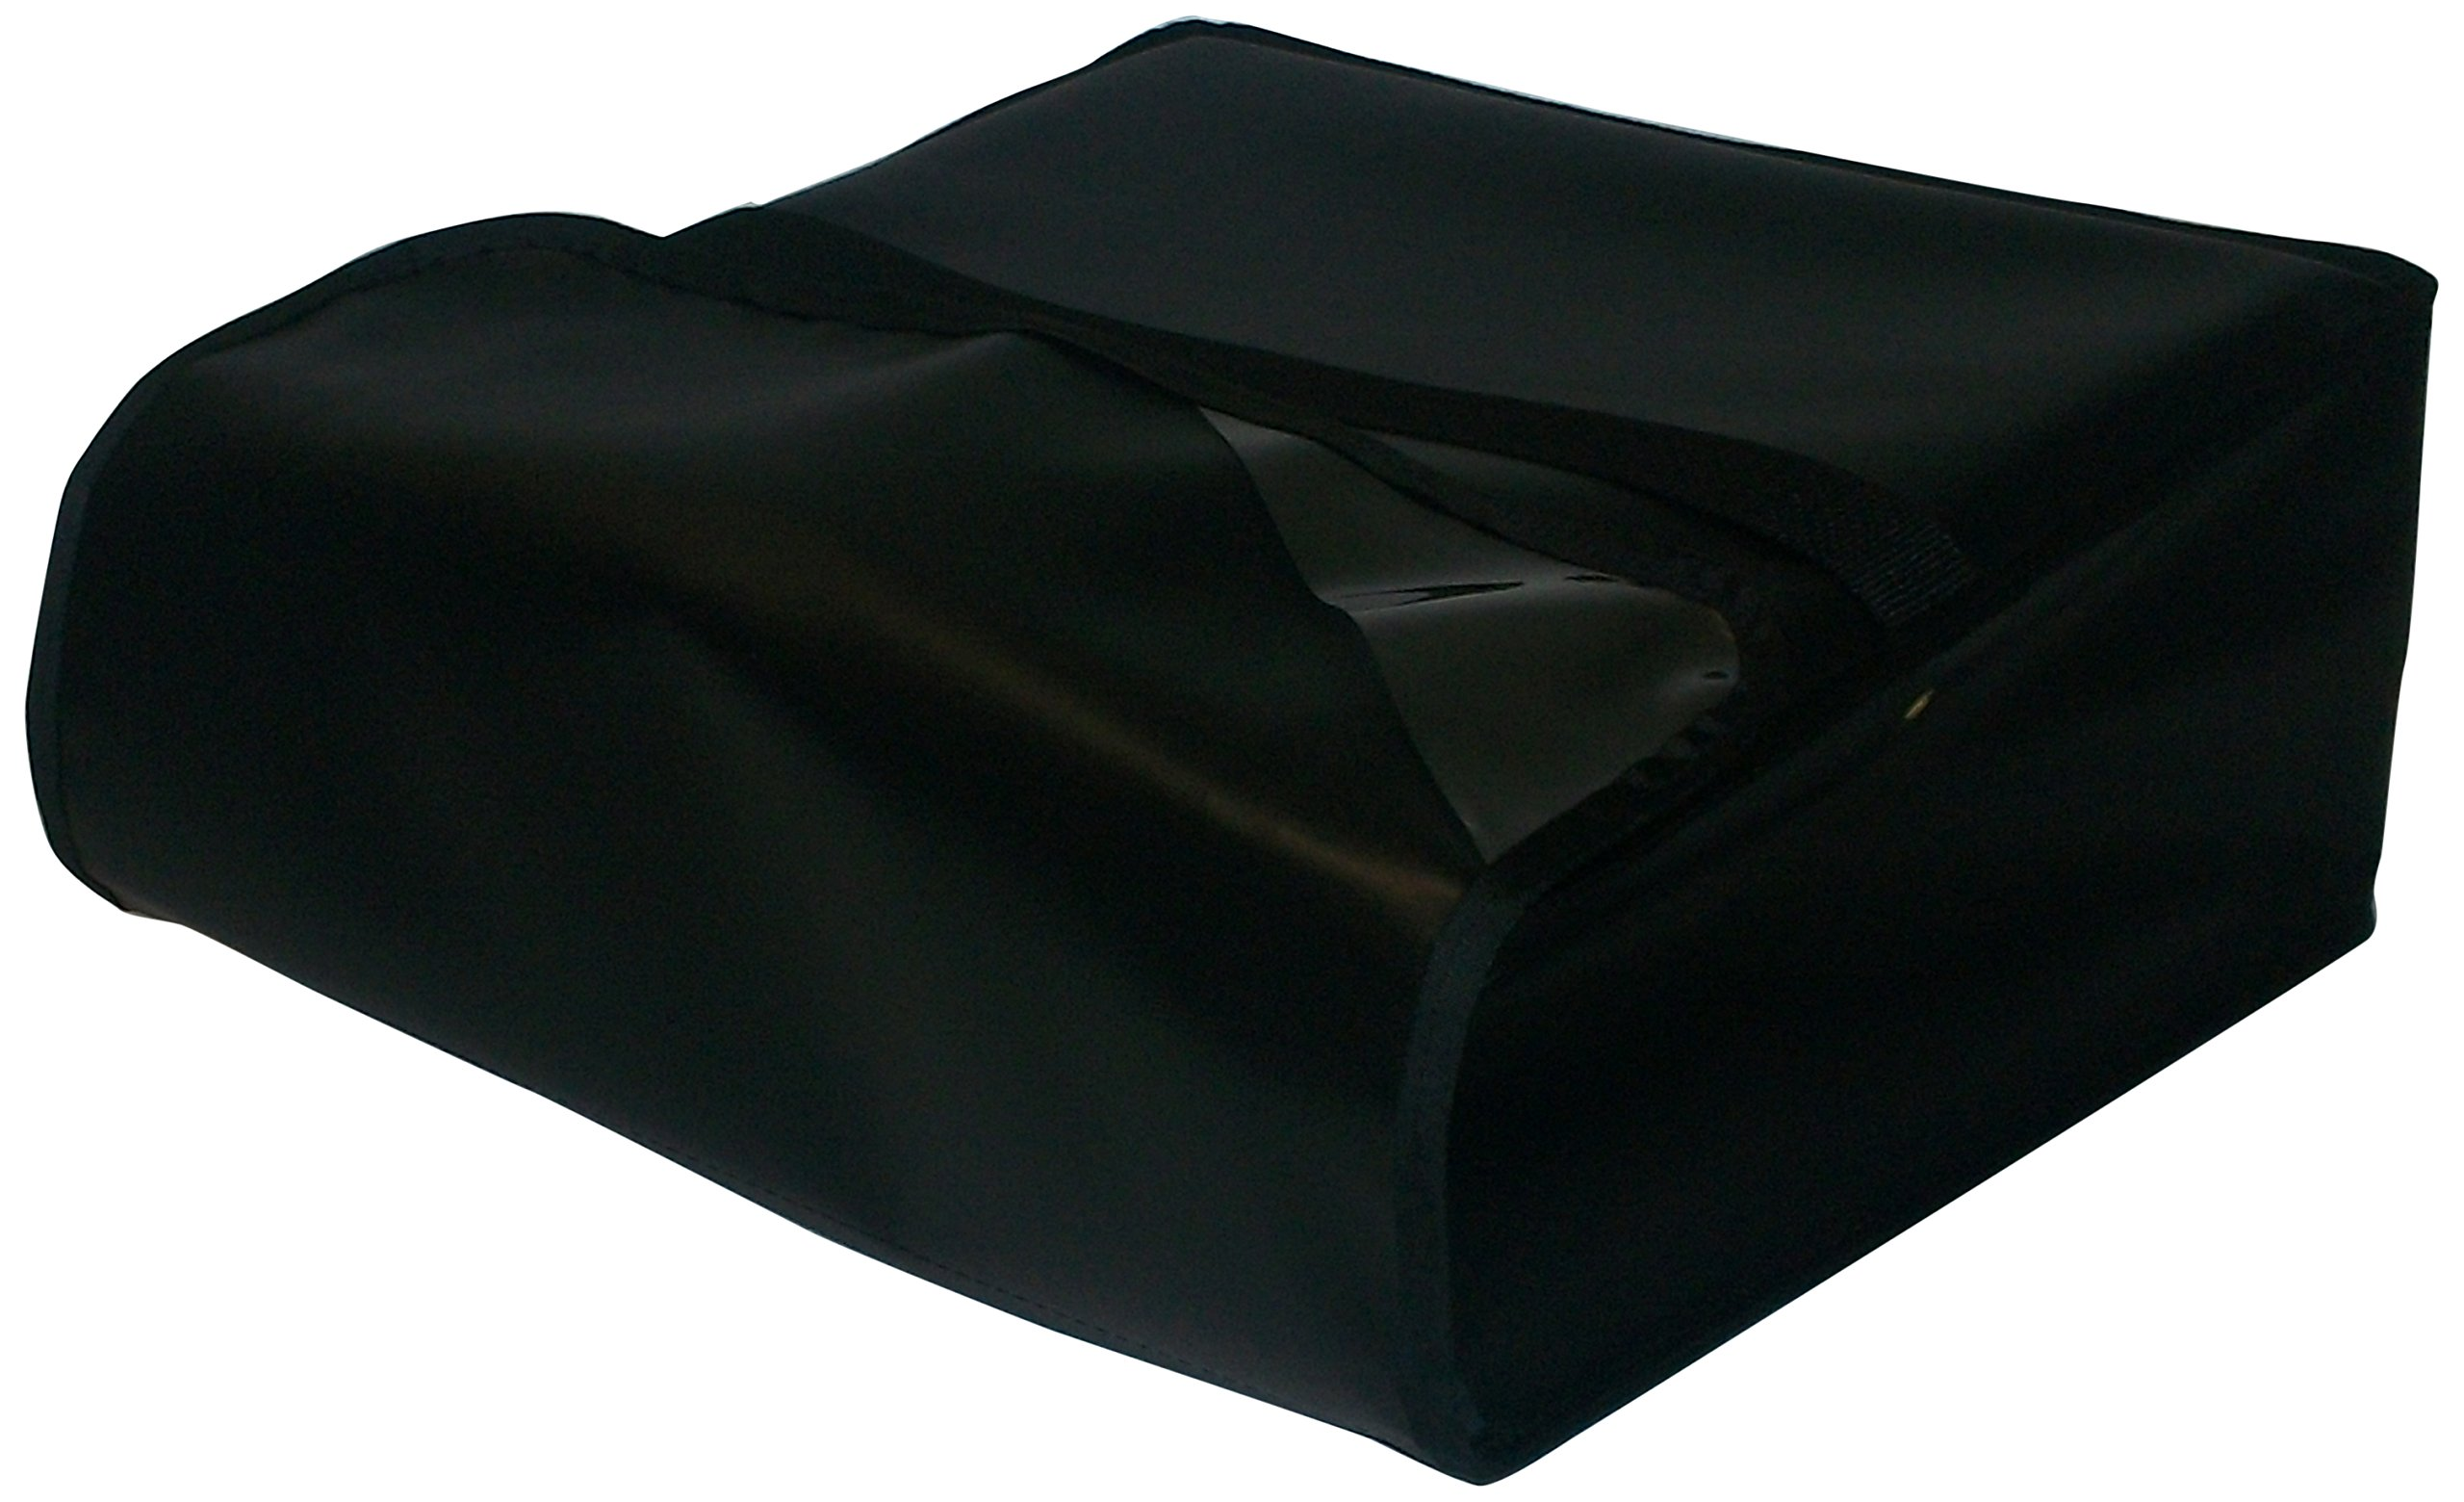 TCB Insulated Bags PK-322-Black Insulated Pizza Delivery Bag, Holds 3 Each 20'' Pizzas, 22'' x 22'' x 7'', Black